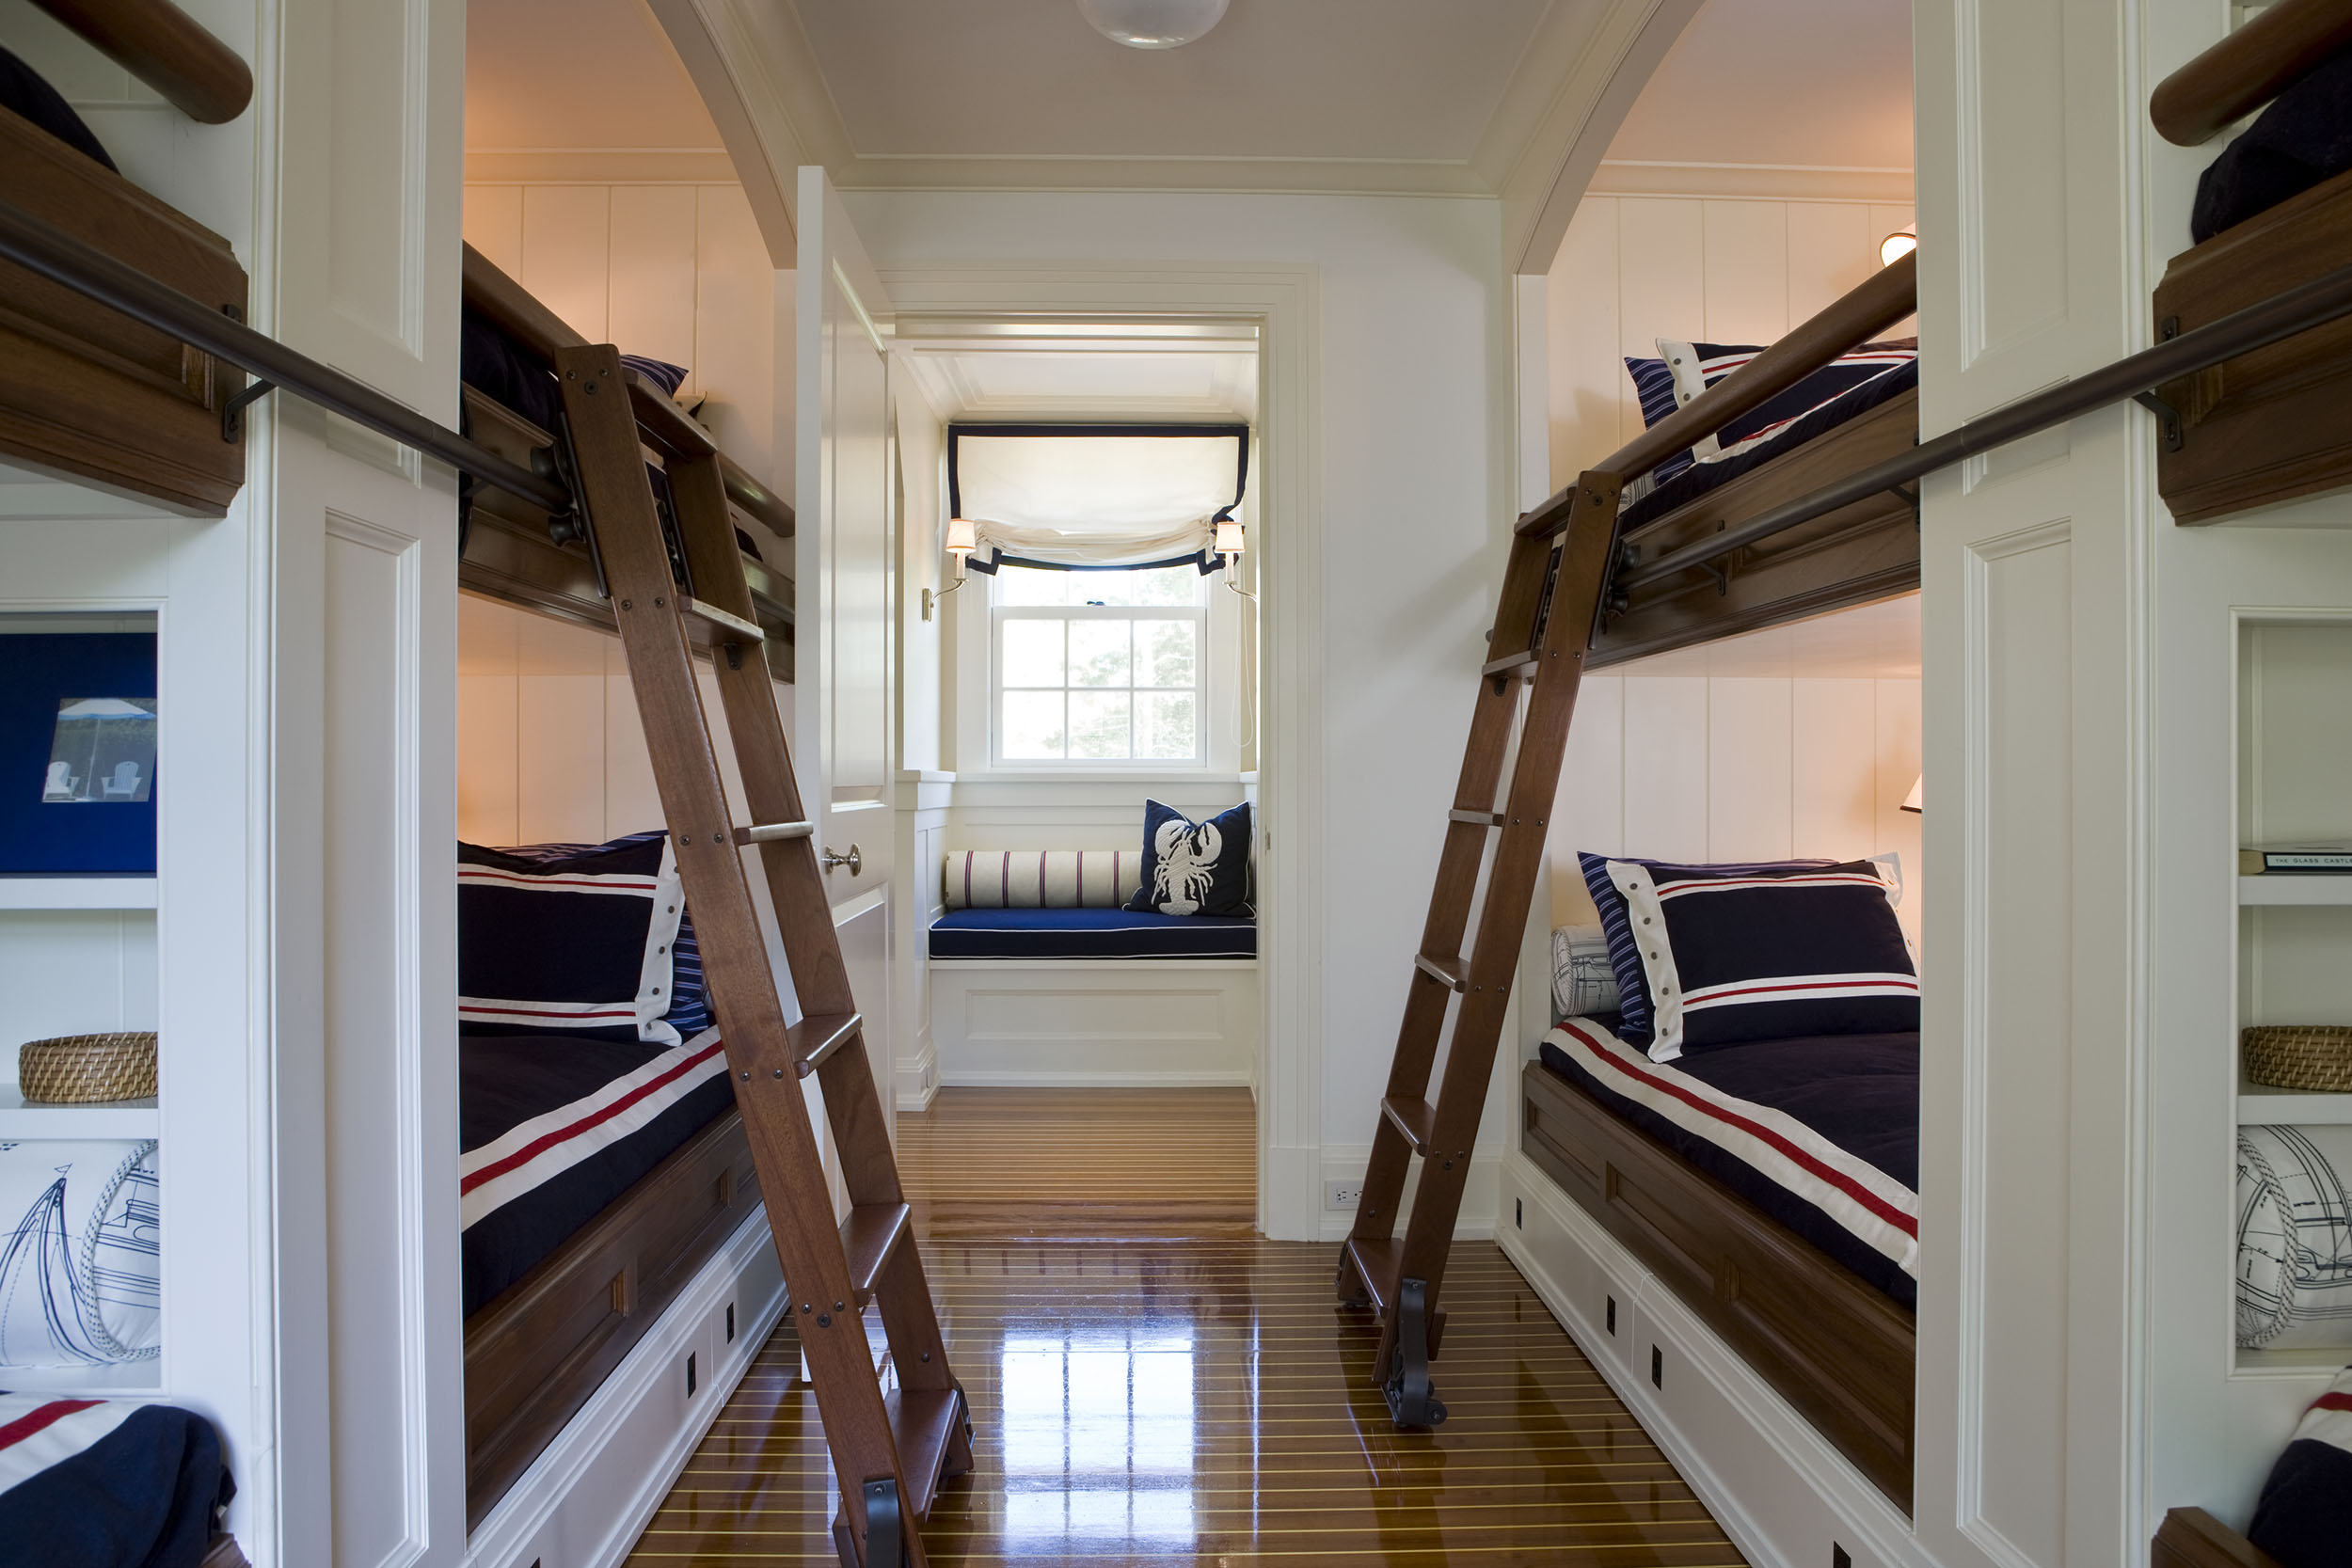 This bunk bed room looks like it is on a boat..the designer captured the nautical look to a tee.